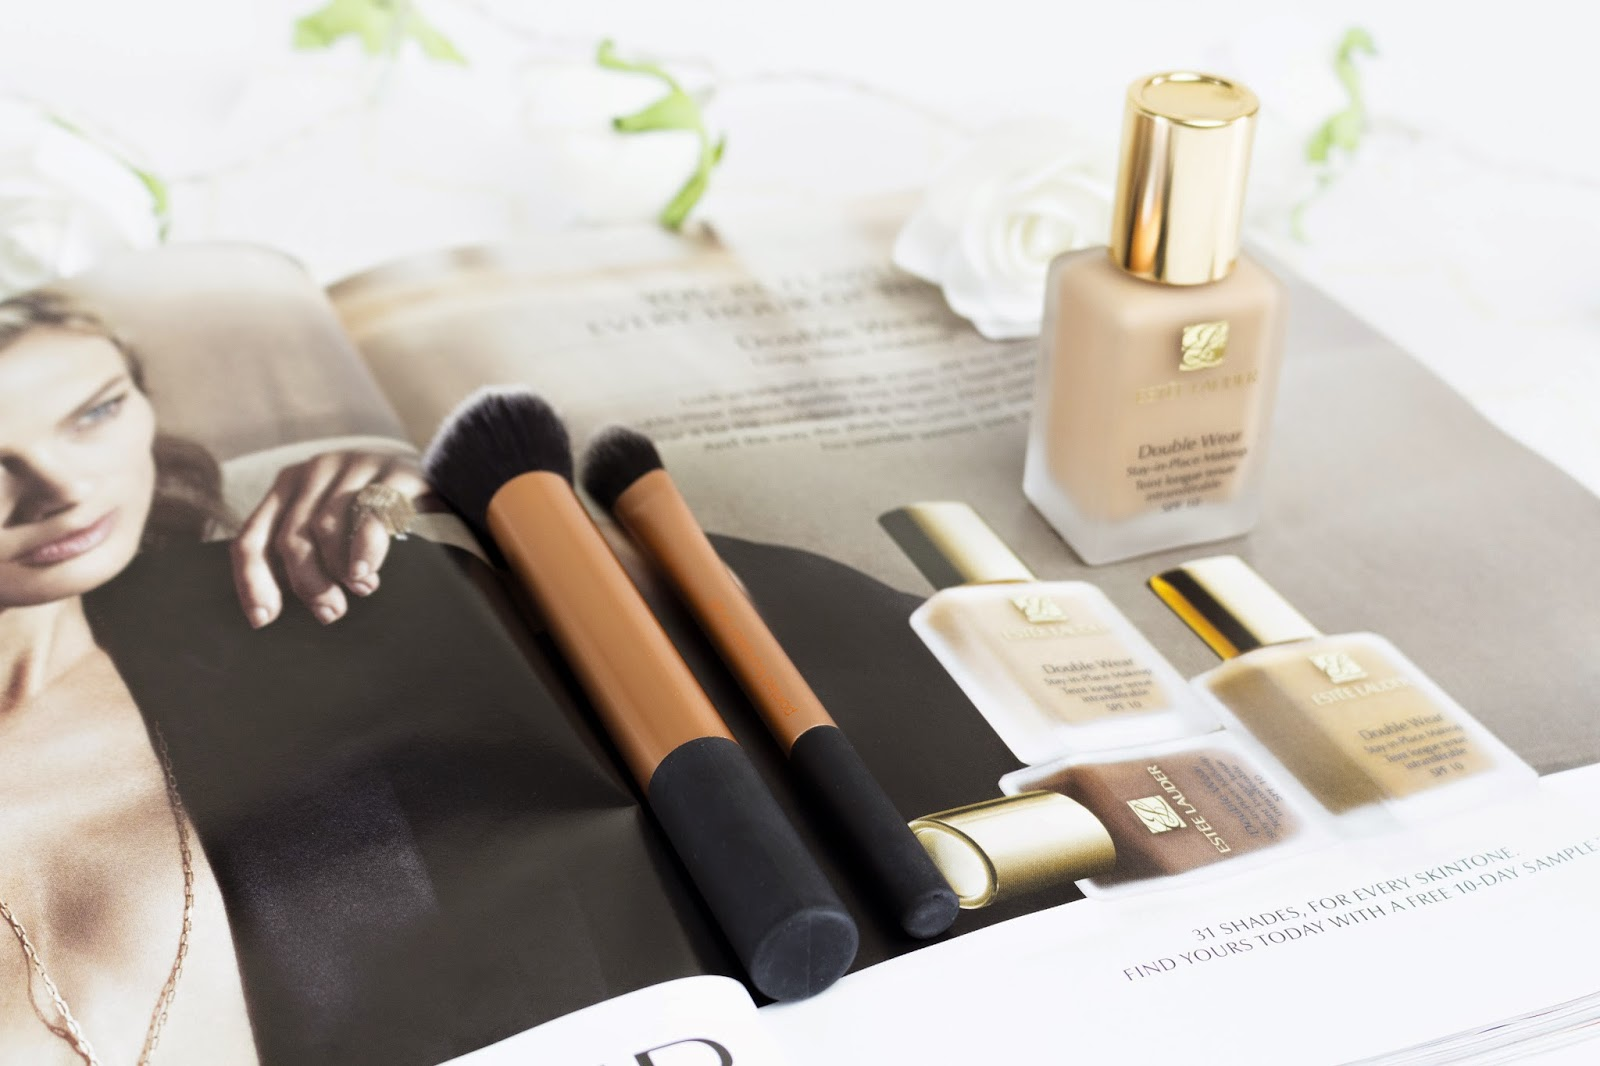 how to apply double wear foundation with a brush